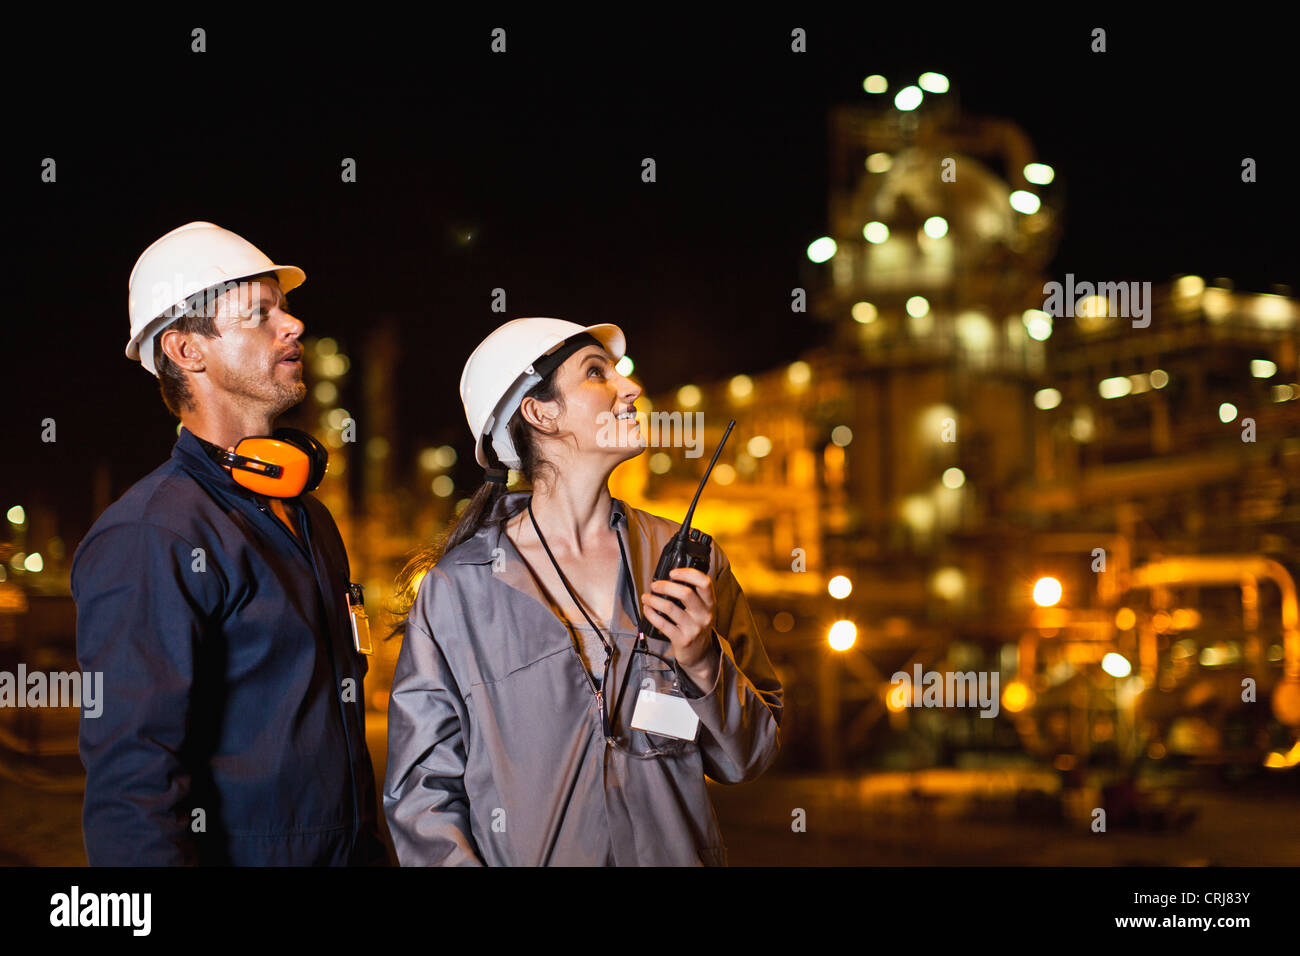 Workers talking at oil refinery - Stock Image